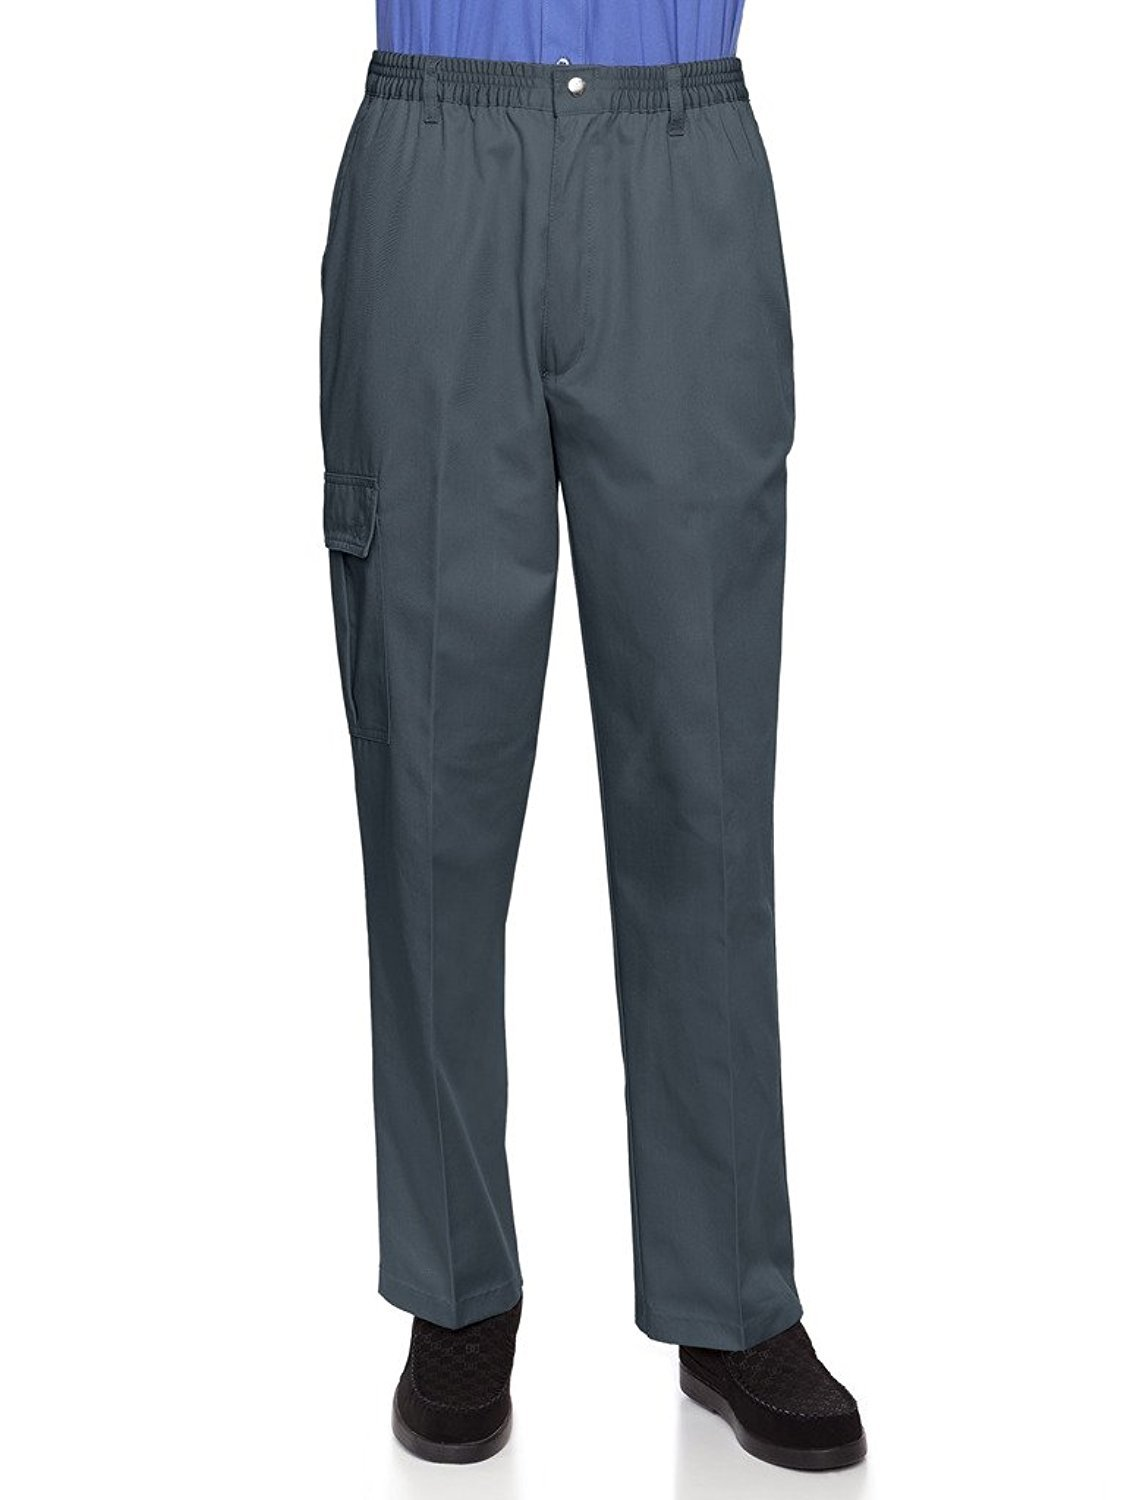 AKA Wrinkle Free Men's Full Elastic Waist Twill Casual Pant Grey Small